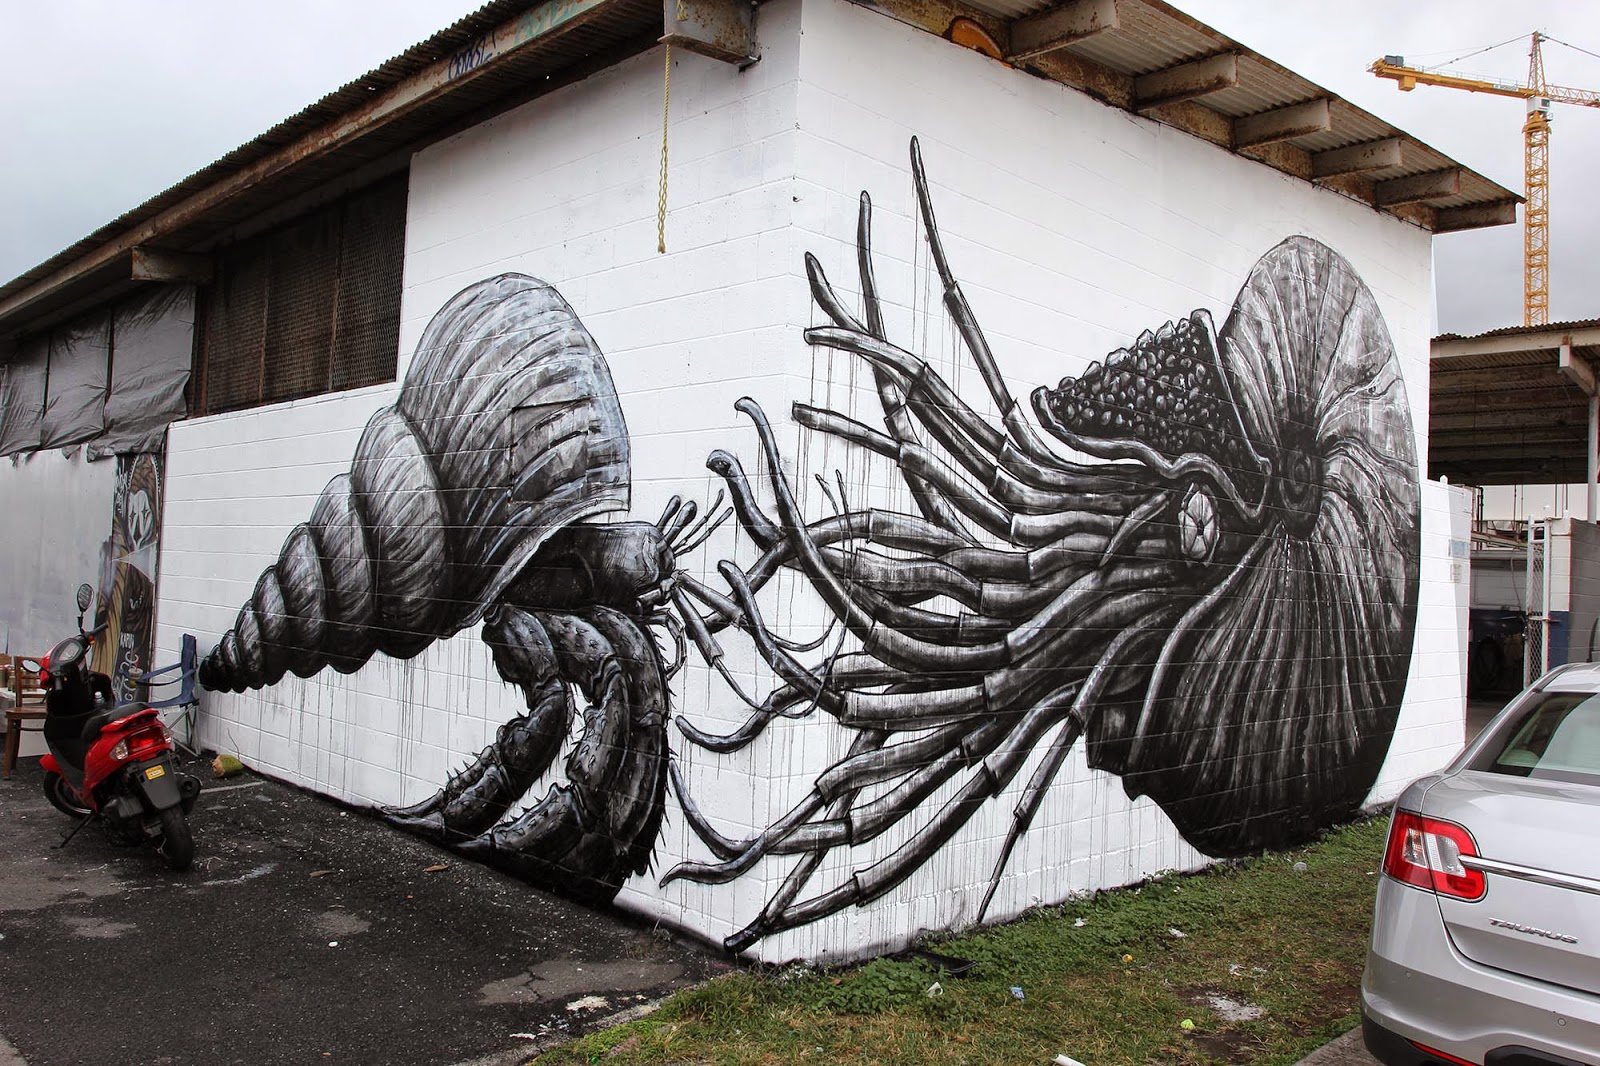 ROA is currently in Honolulu, Hawaii where he flew in to participate in the fifth edition of Pow! Wow! Hawaii '15.